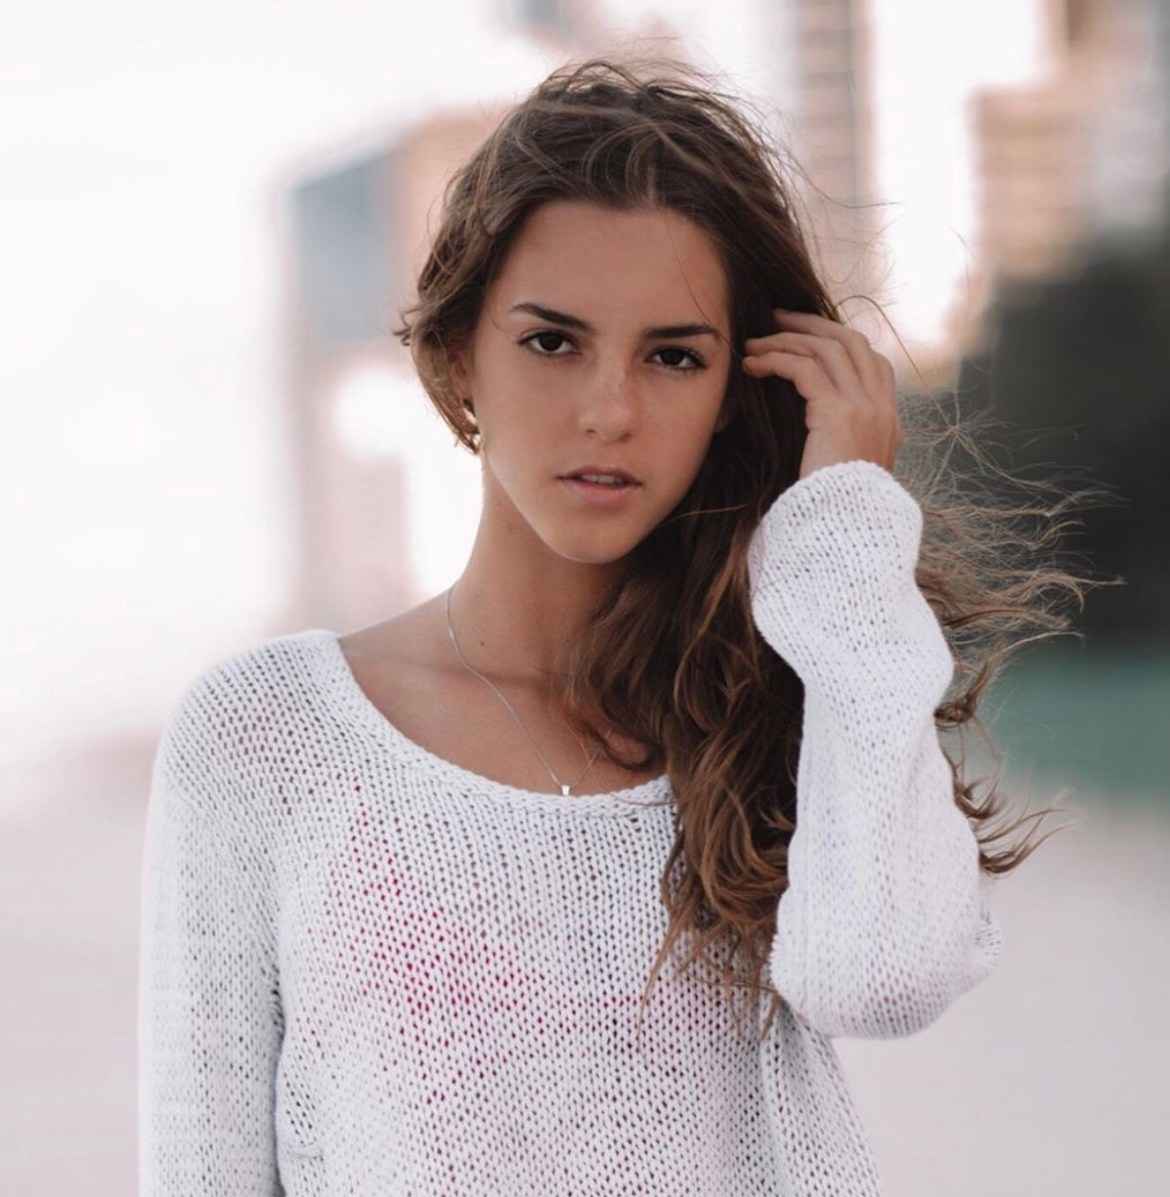 How Much Is Emily Feld's Instagram Worth?